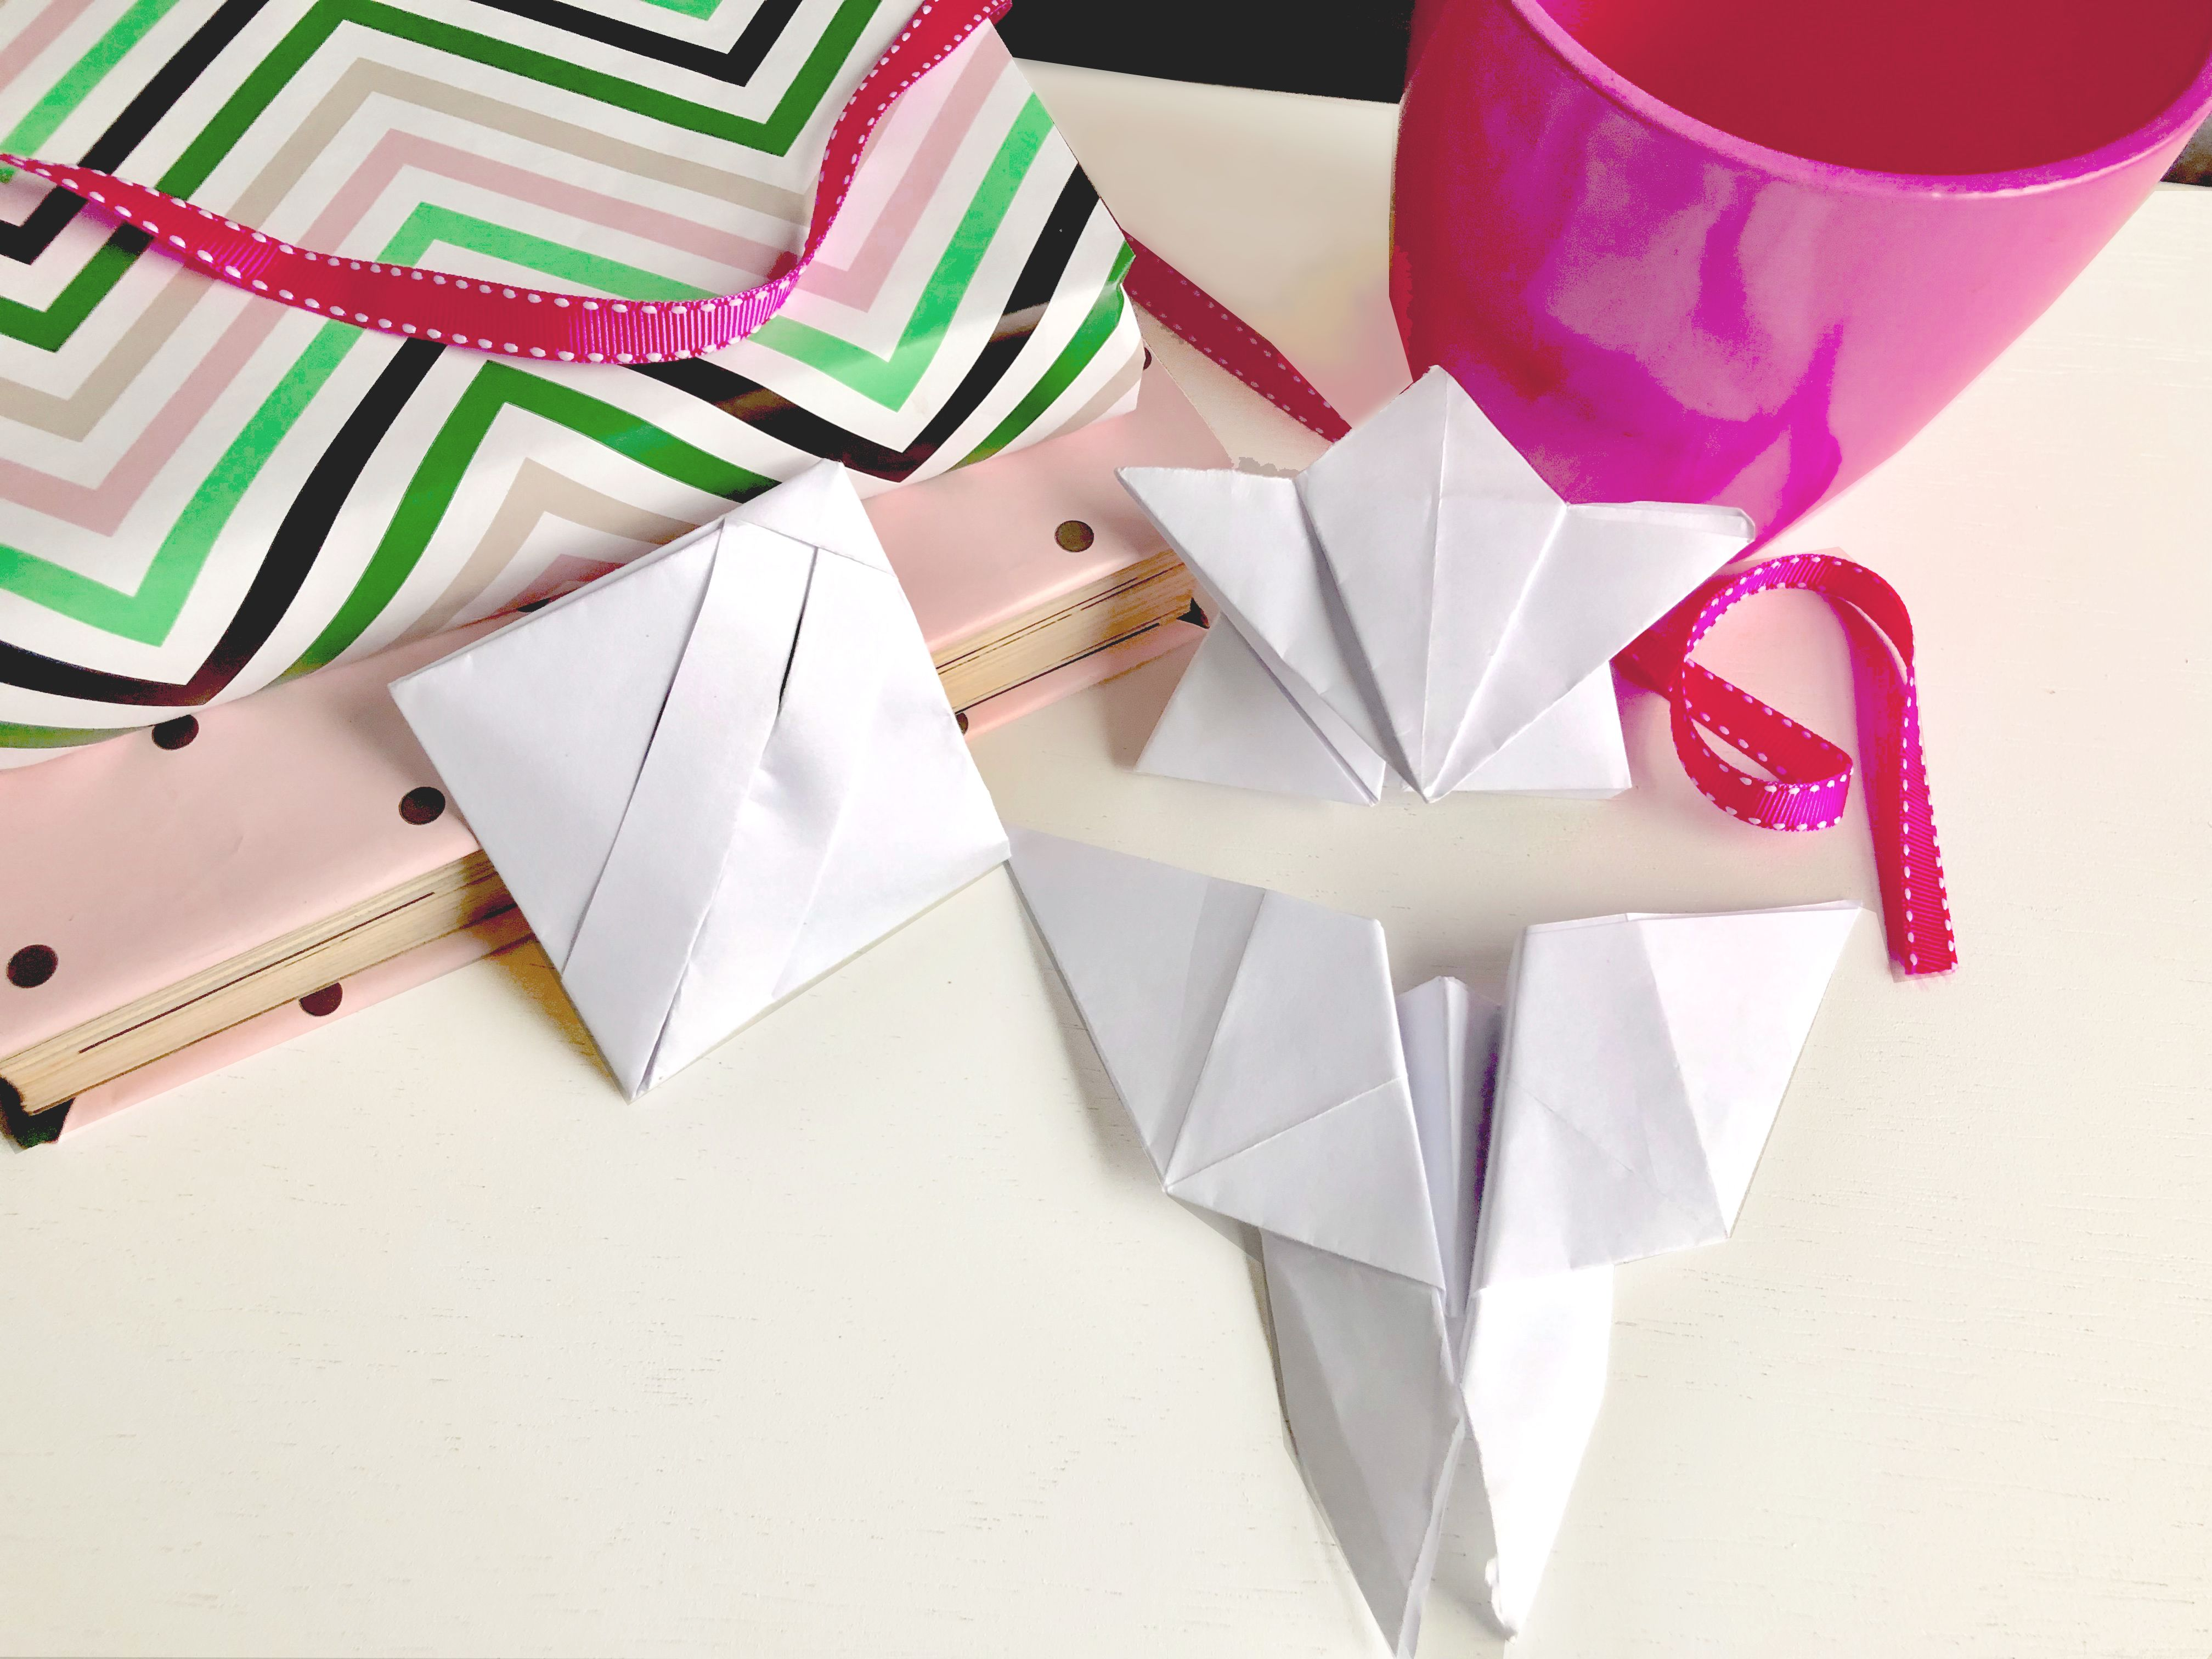 other origami folds